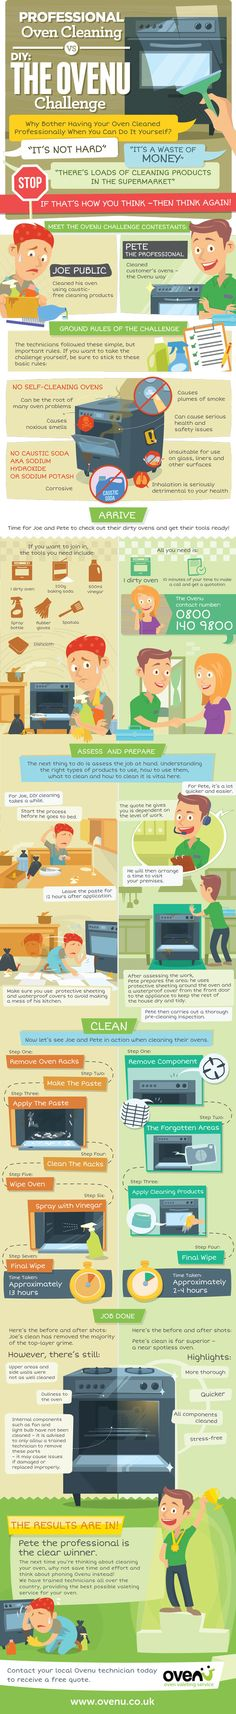 Professional Oven Cleaning Vs. DIY - who will win? #infographic